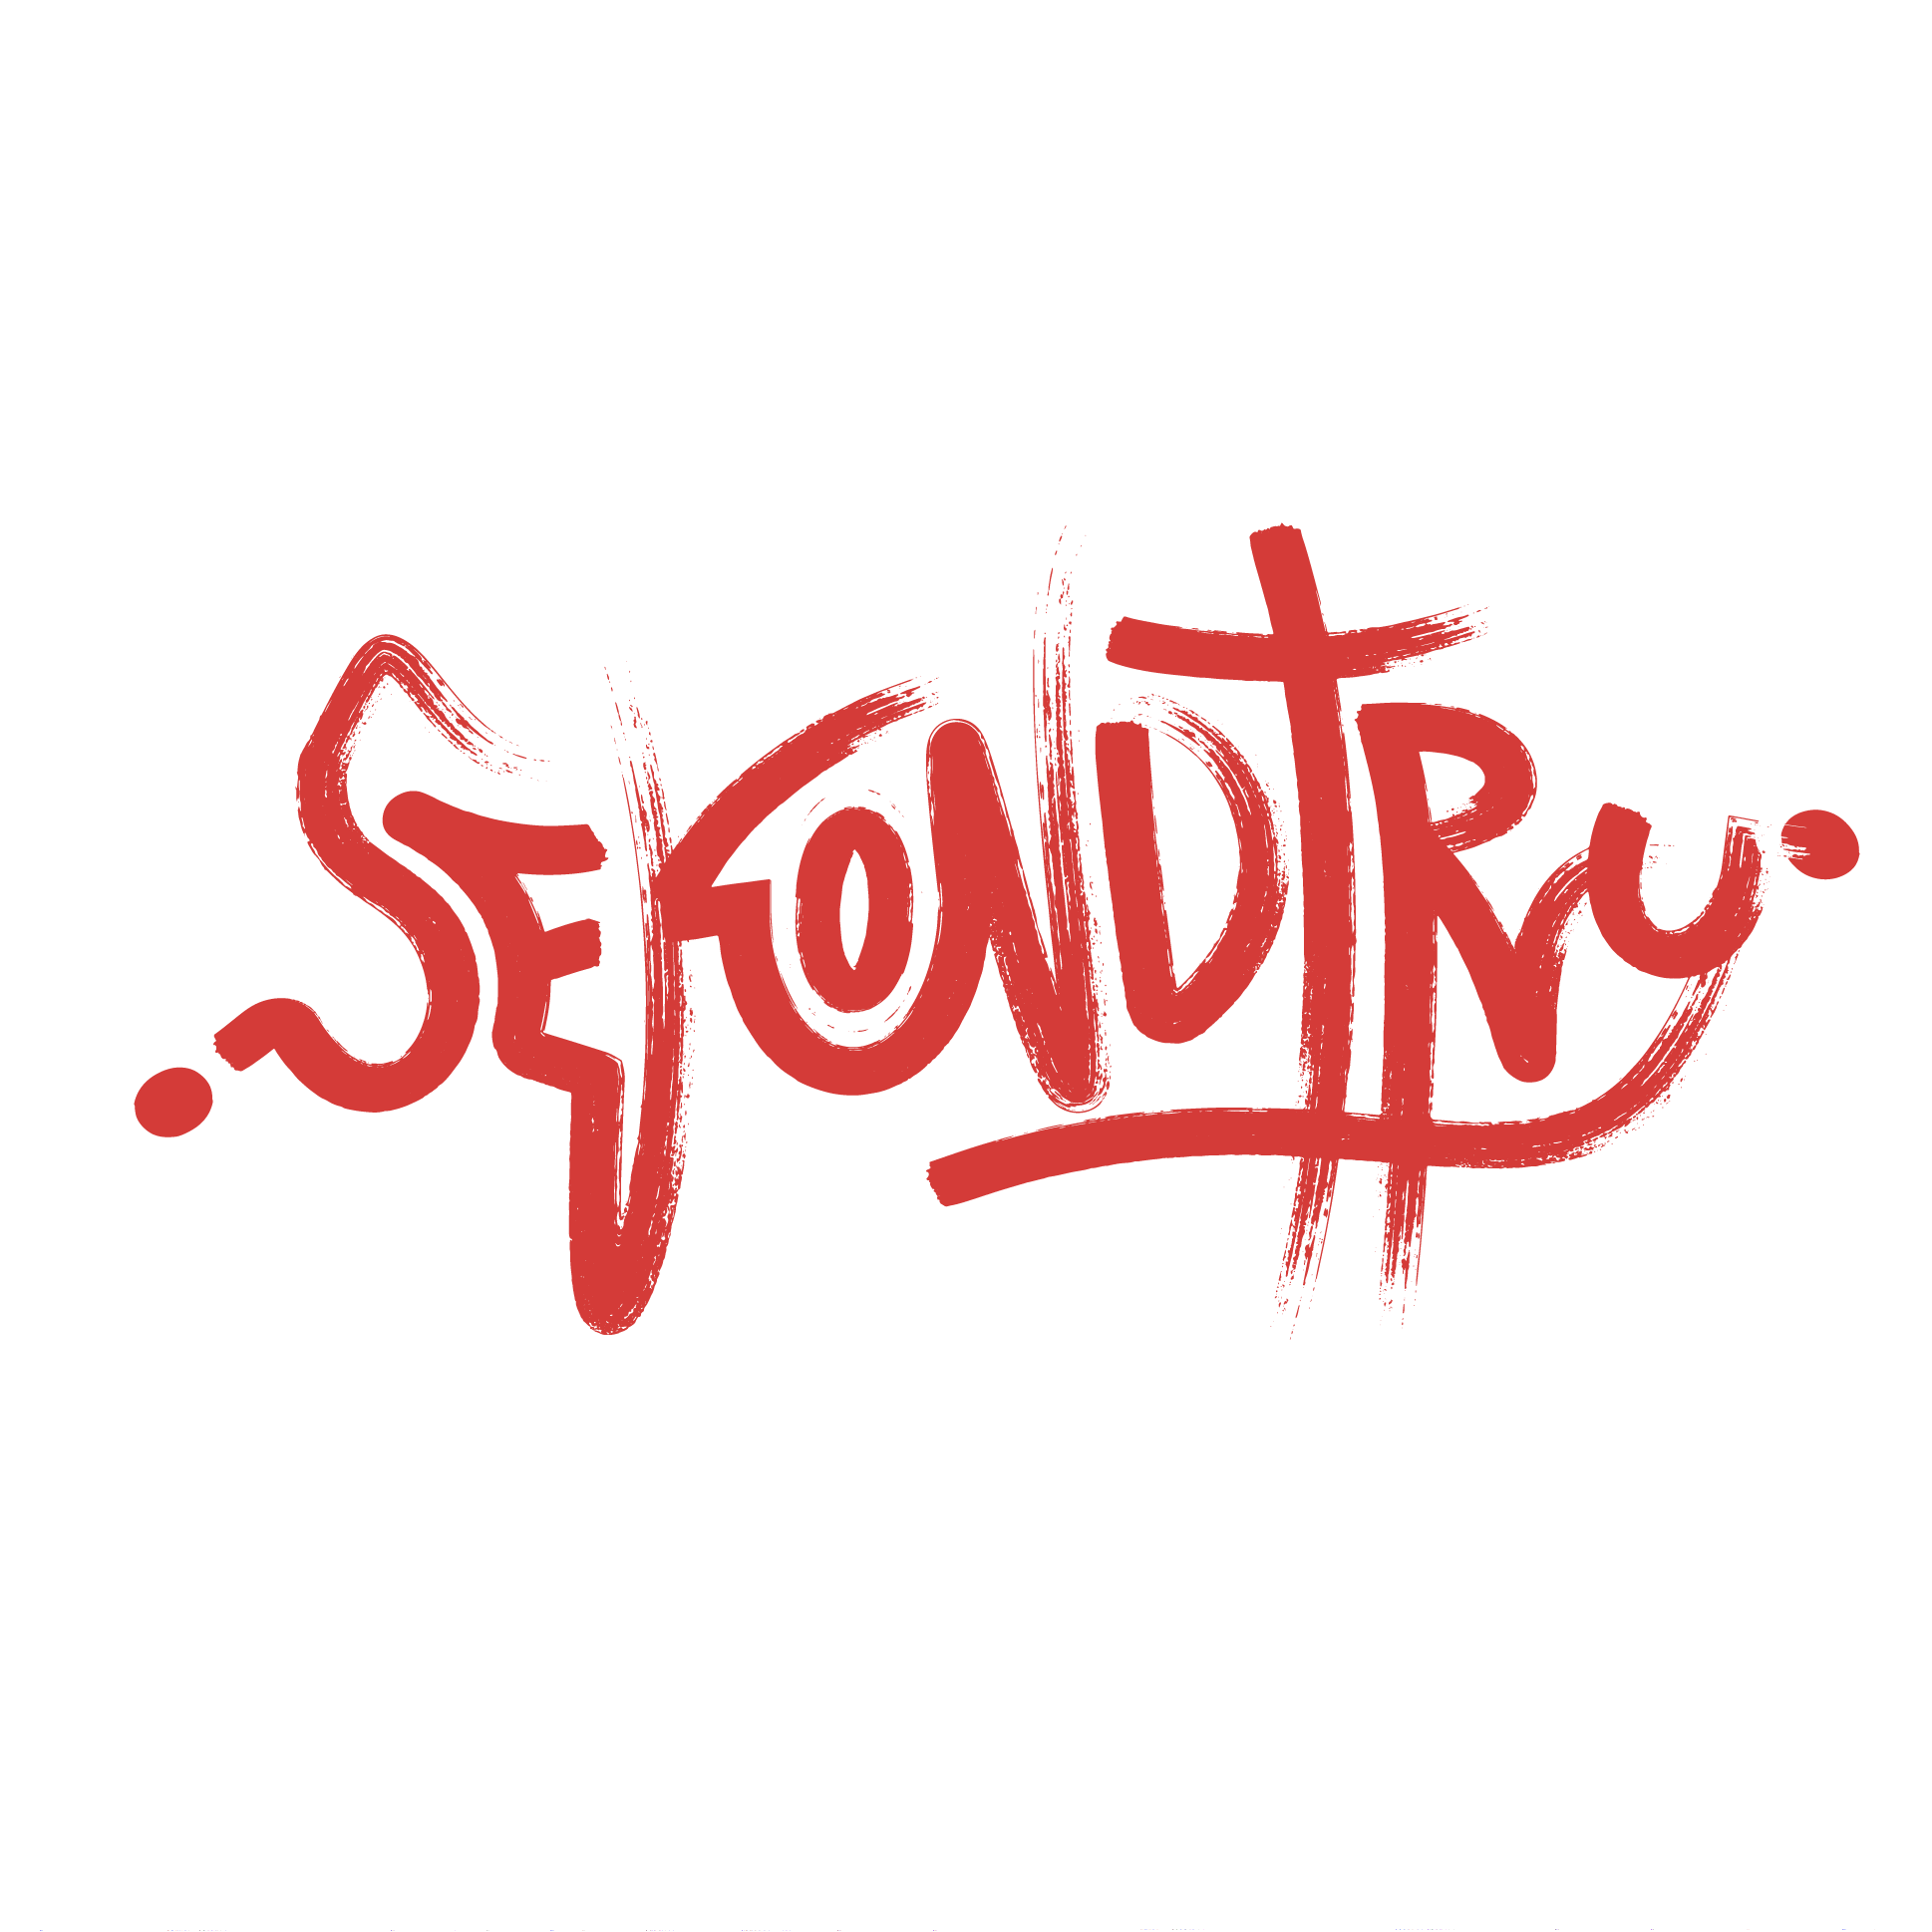 SEKONDTRY